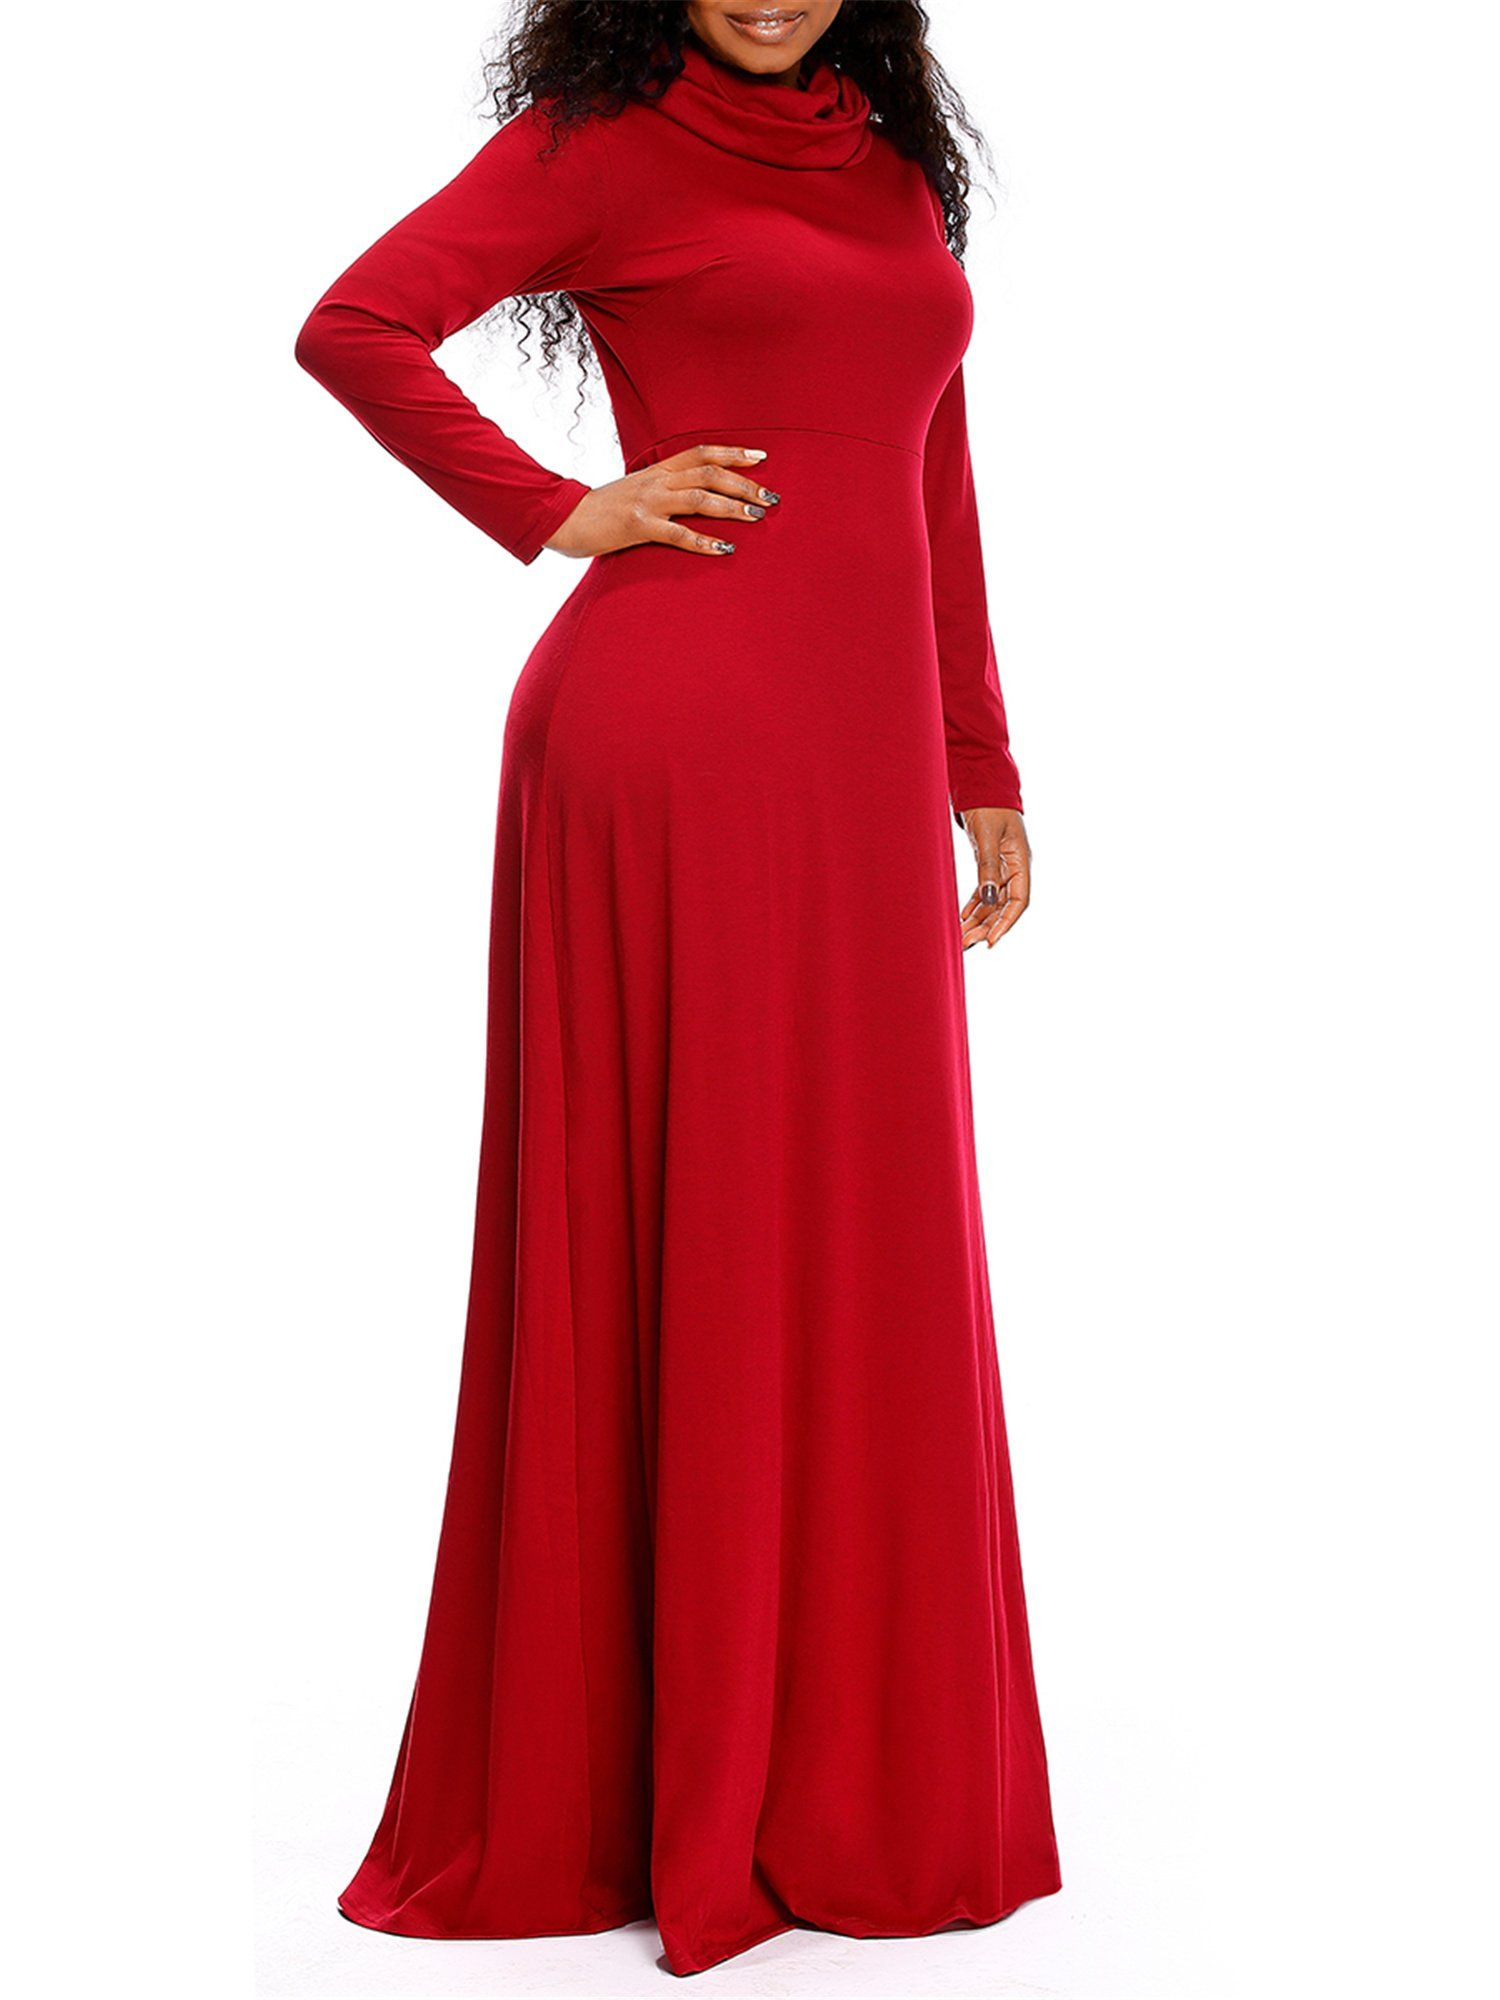 Onlypuff red plus size women long sleeve maxi dress cowl neck casual